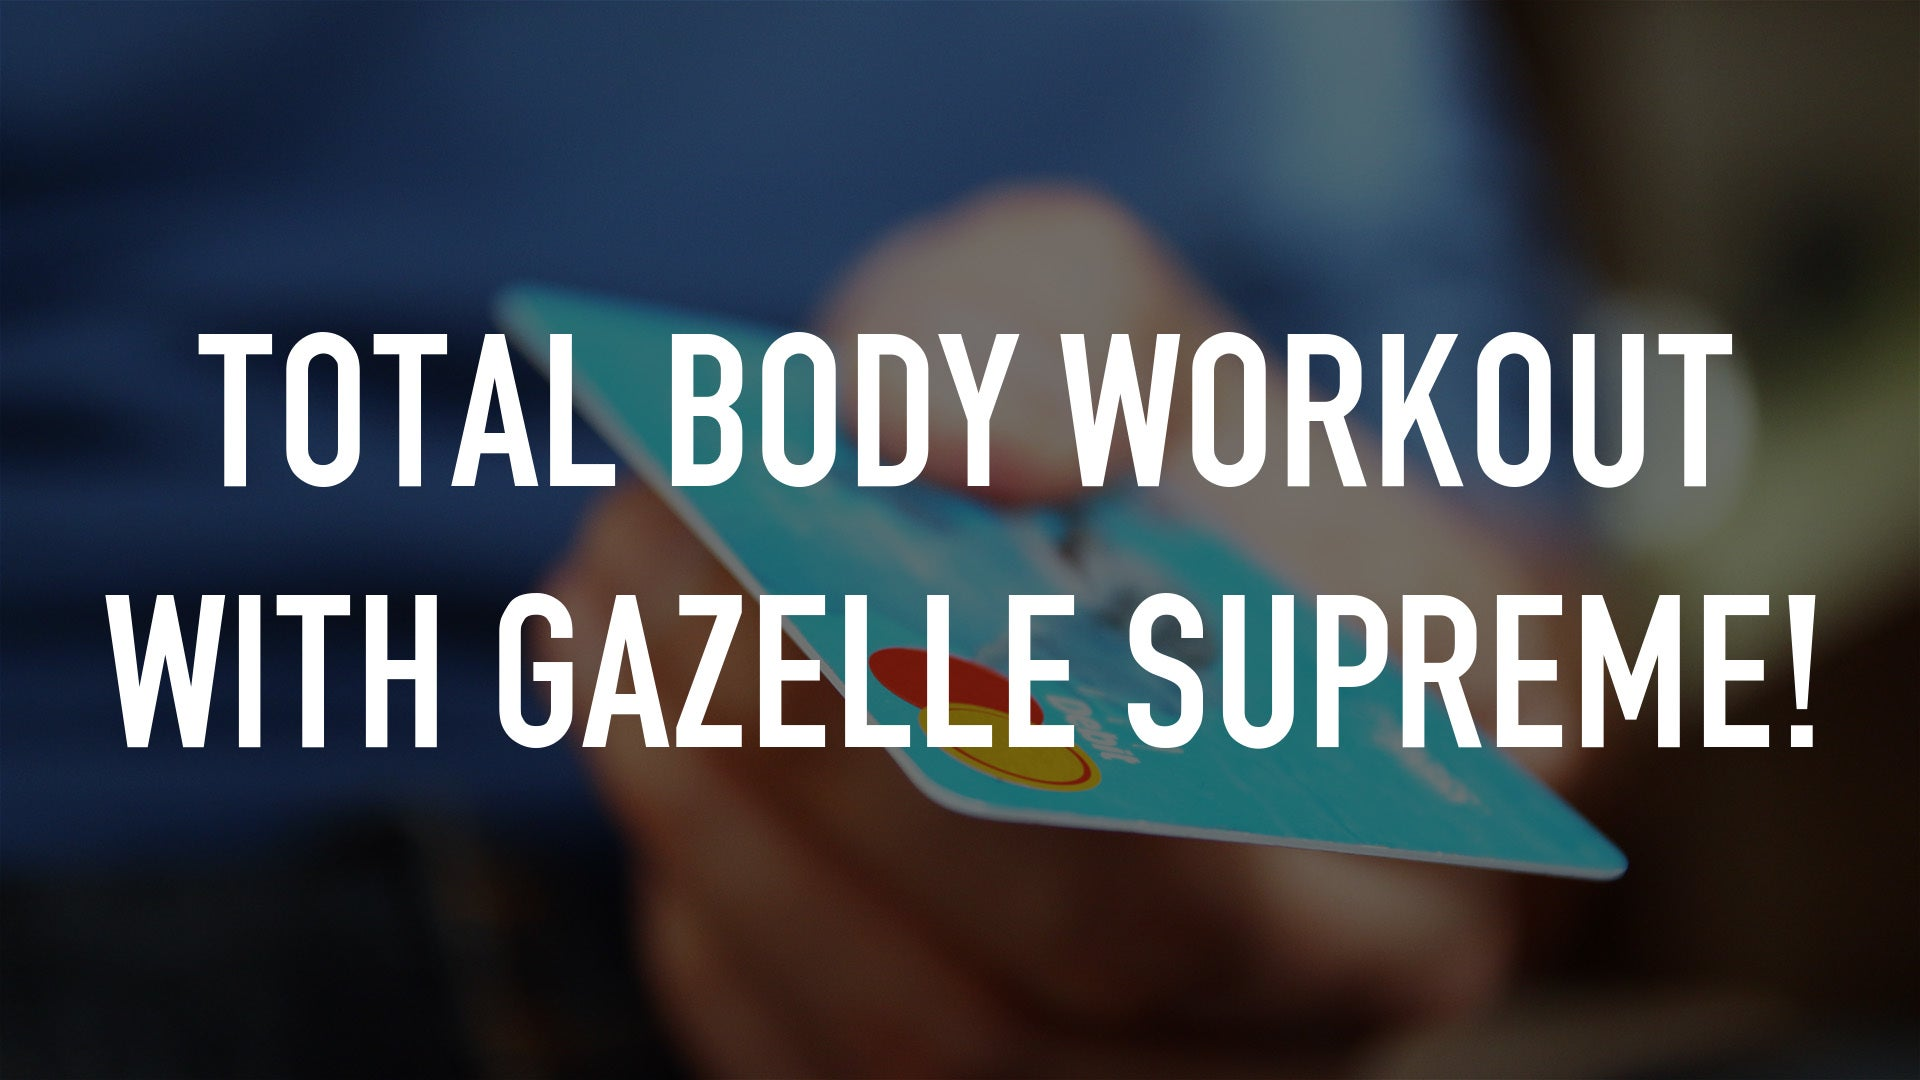 Total Body Workout with Gazelle Supreme!